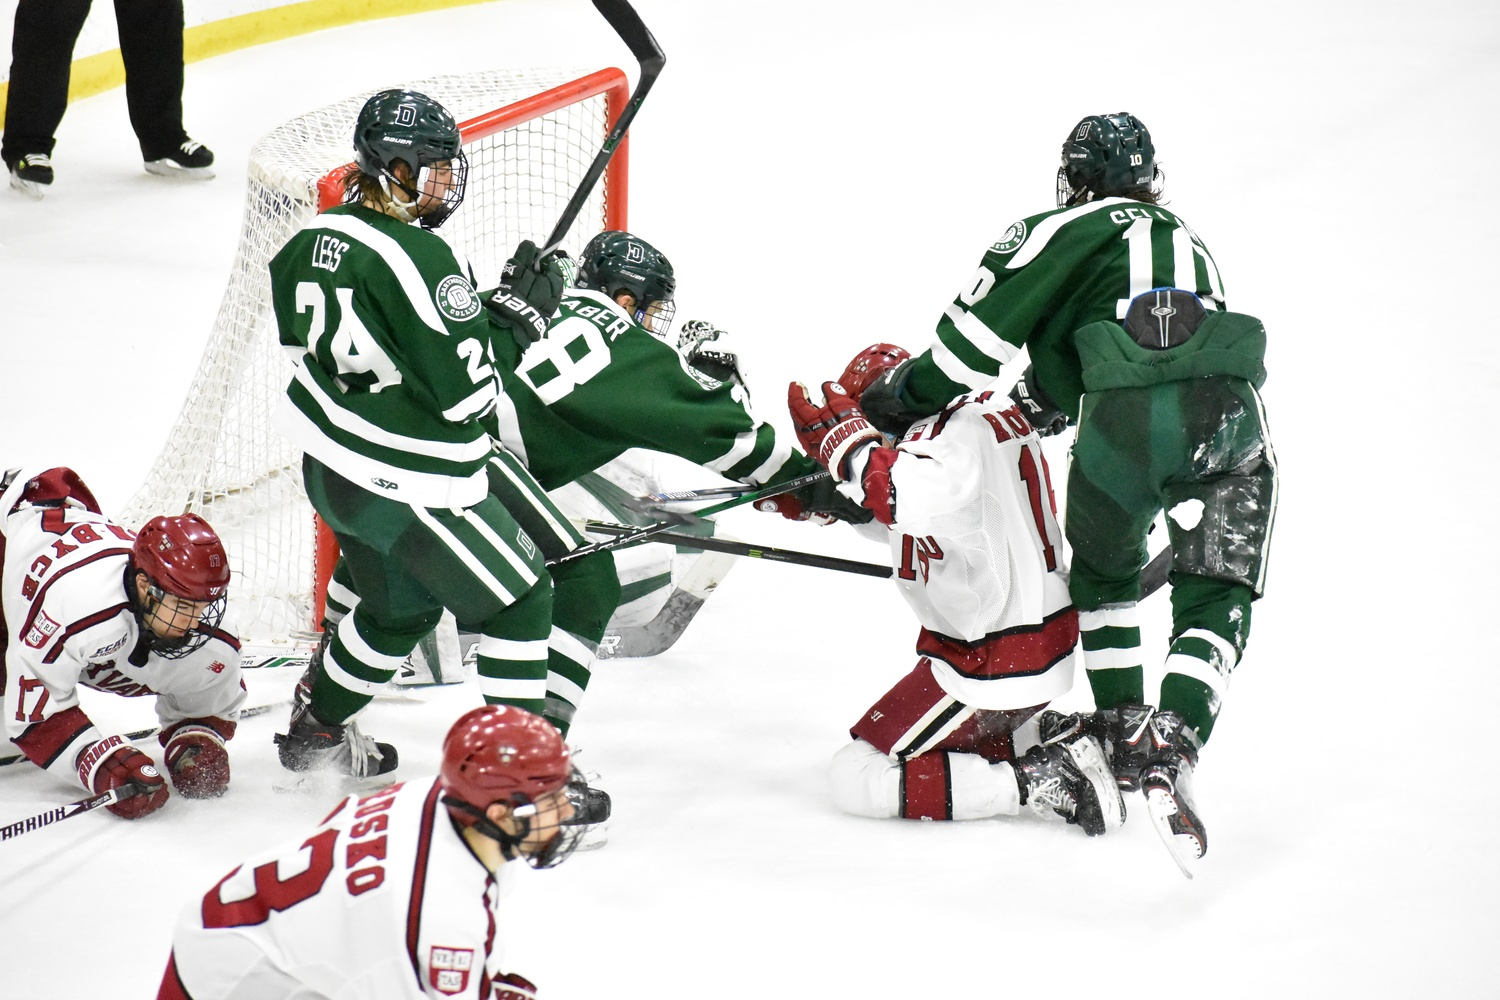 Together, Harvard and Dartmouth took 11 penalties in the game, and the wide margin in the score led to some extracurricular activities.